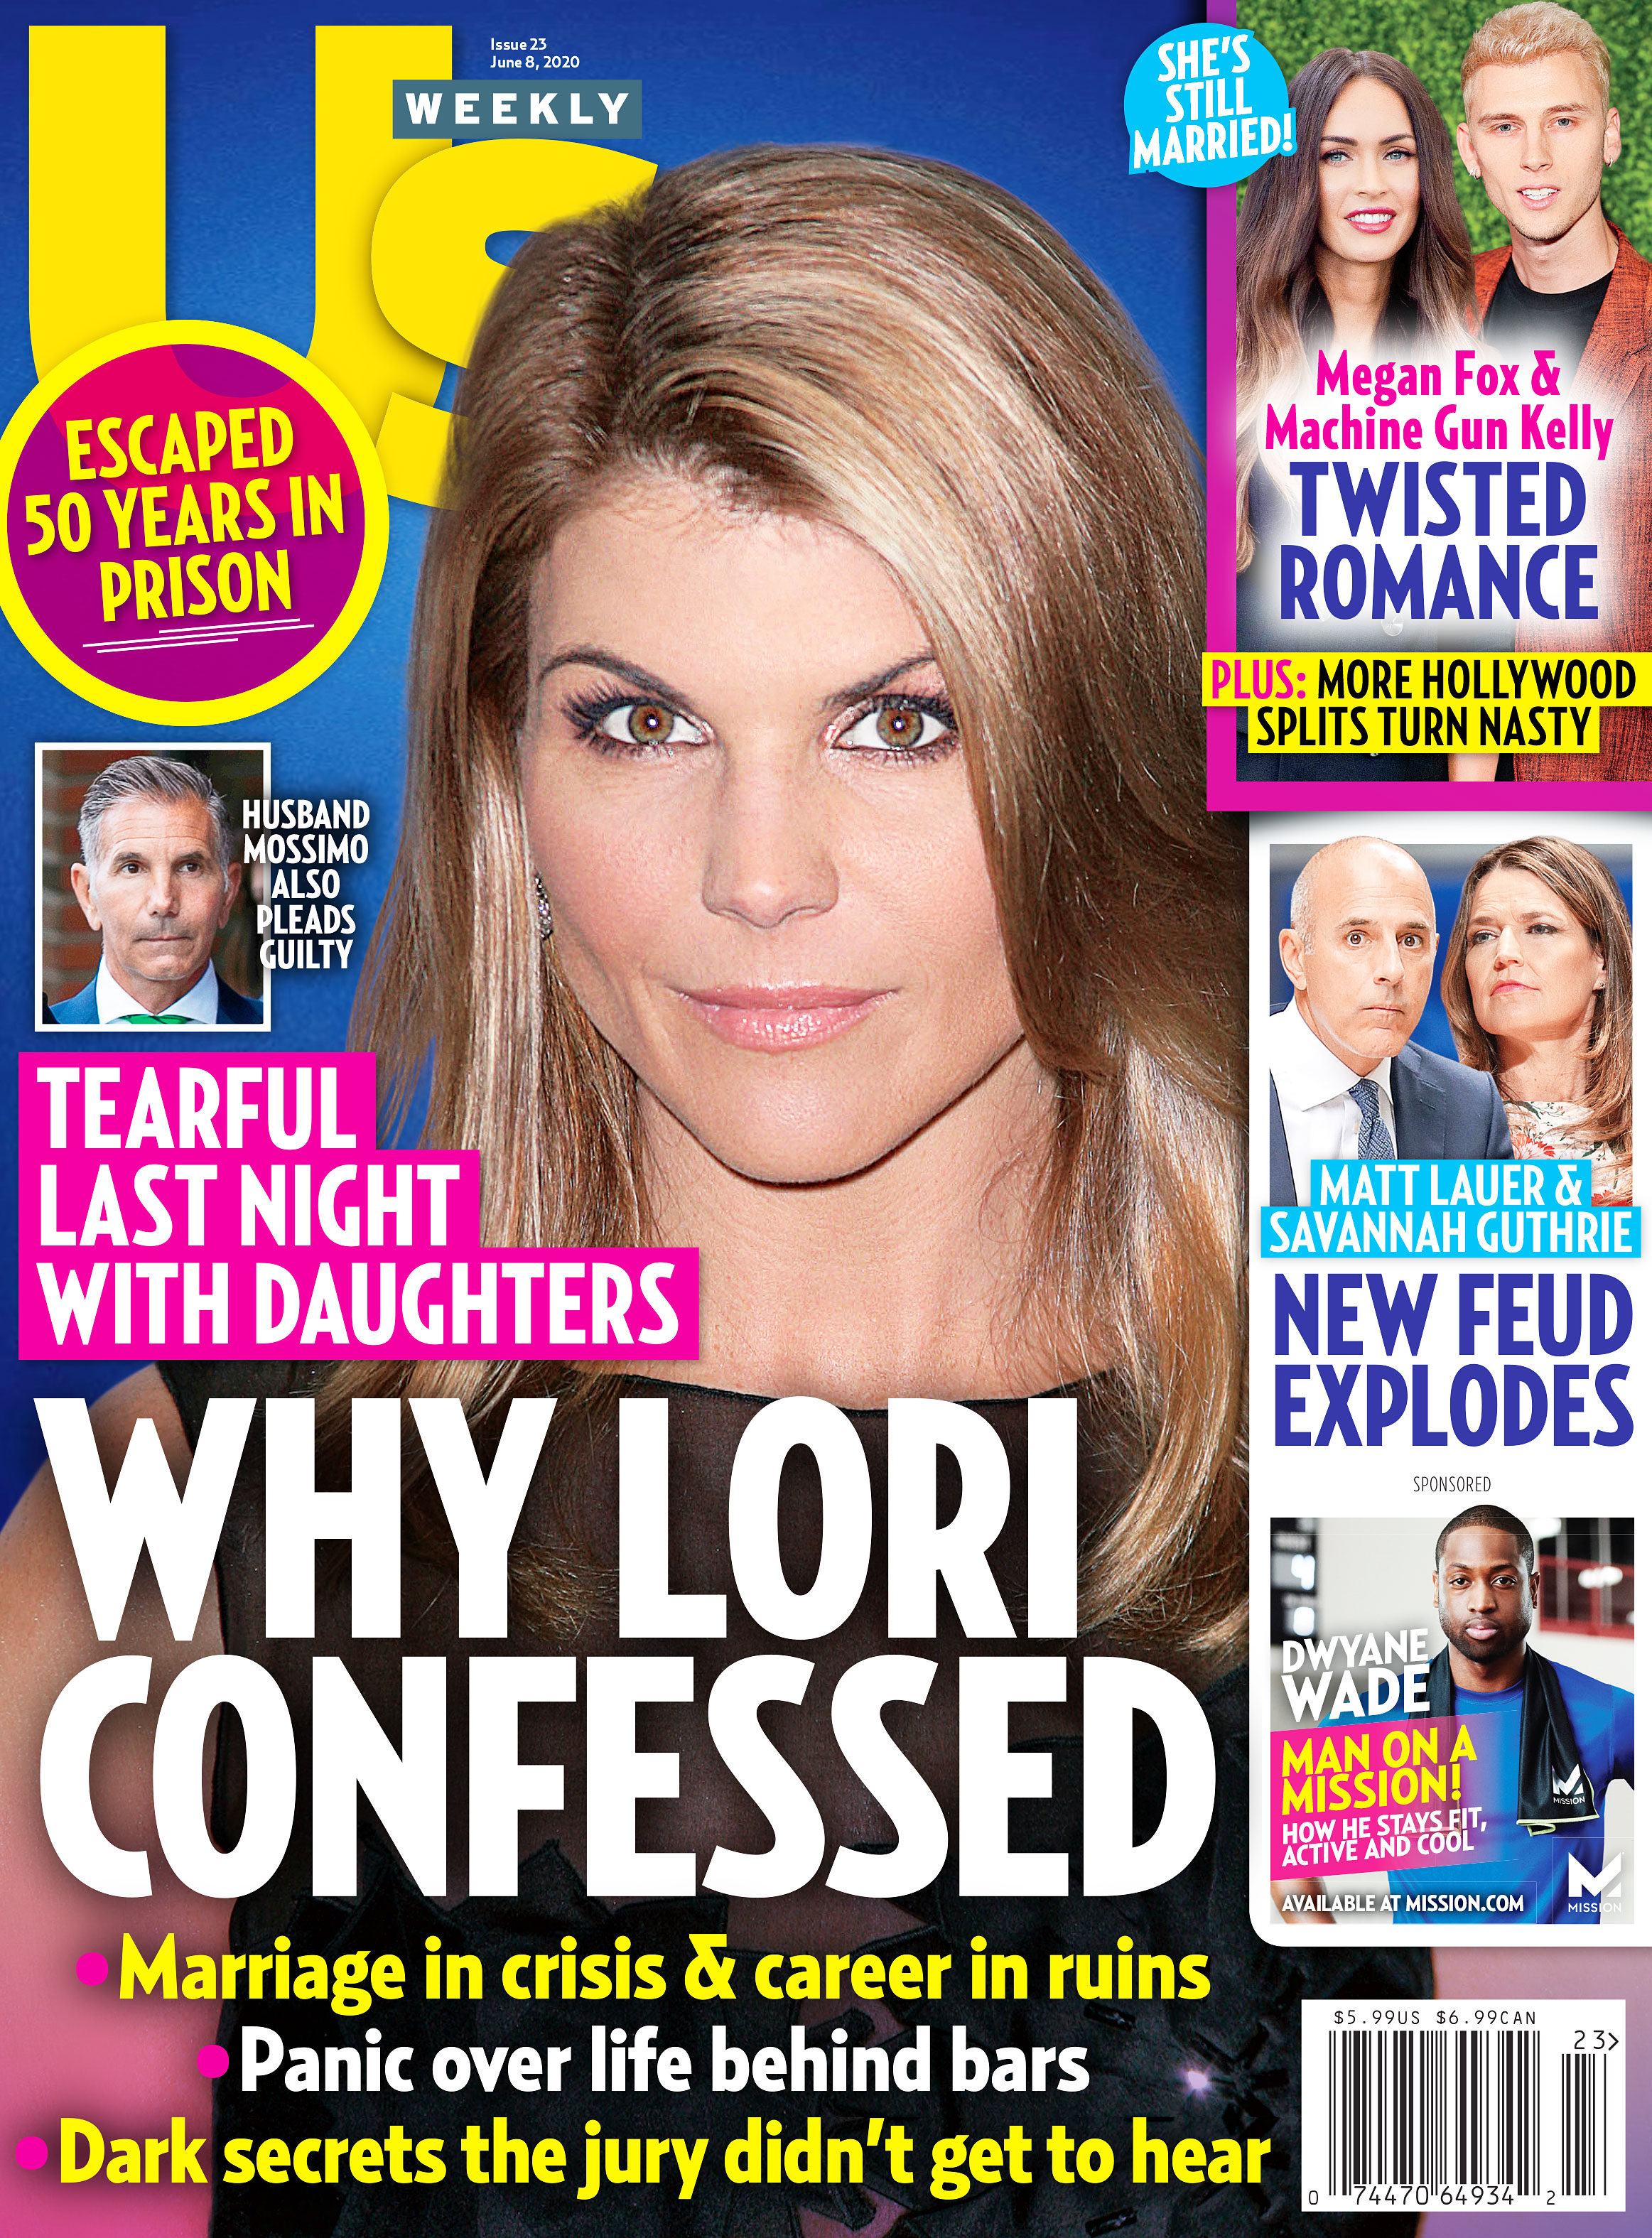 Us Weekly Cover Issue 2320 Lori Loughlin